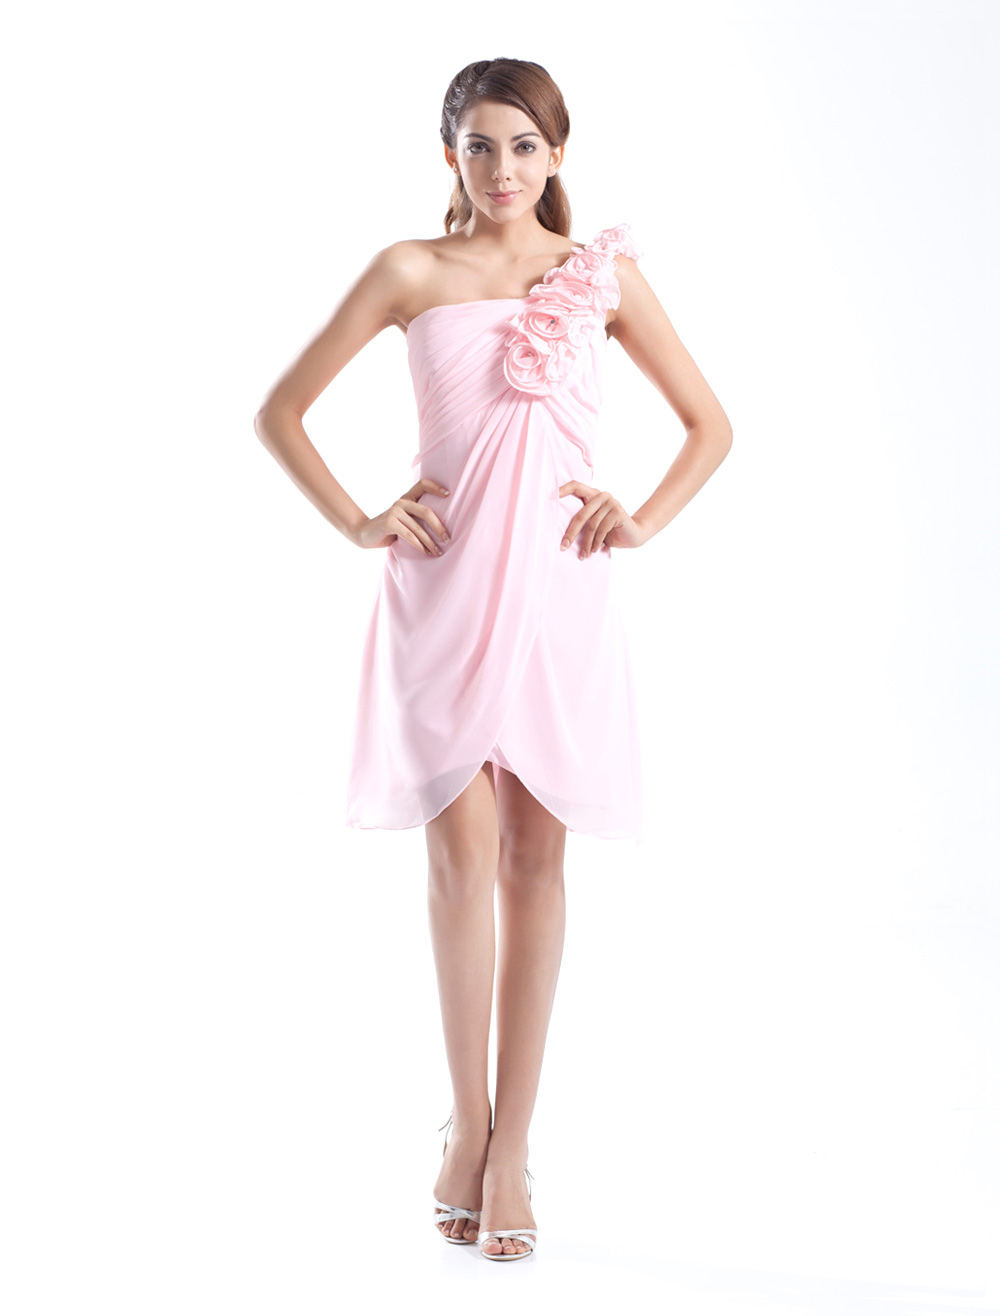 Sweet A-line Pink Chiffon Flower One-Shoulder Knee-Length Fashion Bridesmaid Dress